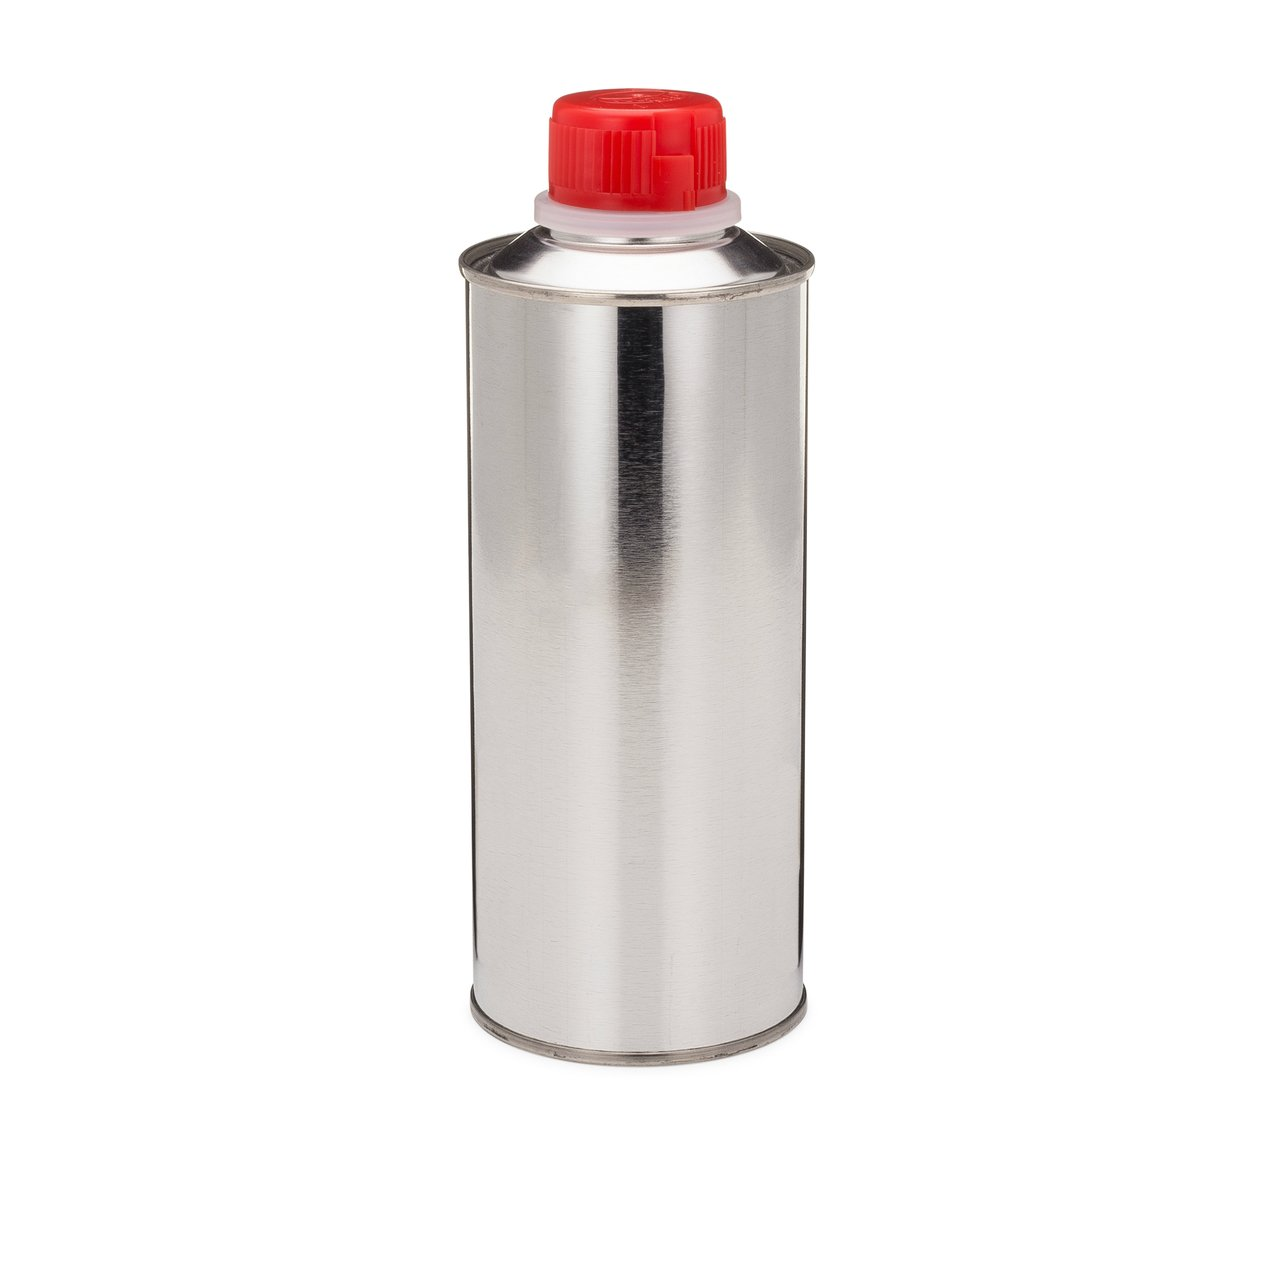 Tin-plated Cone-Top Steel Metal Can with Child Resistant (16 Oz Capacity)